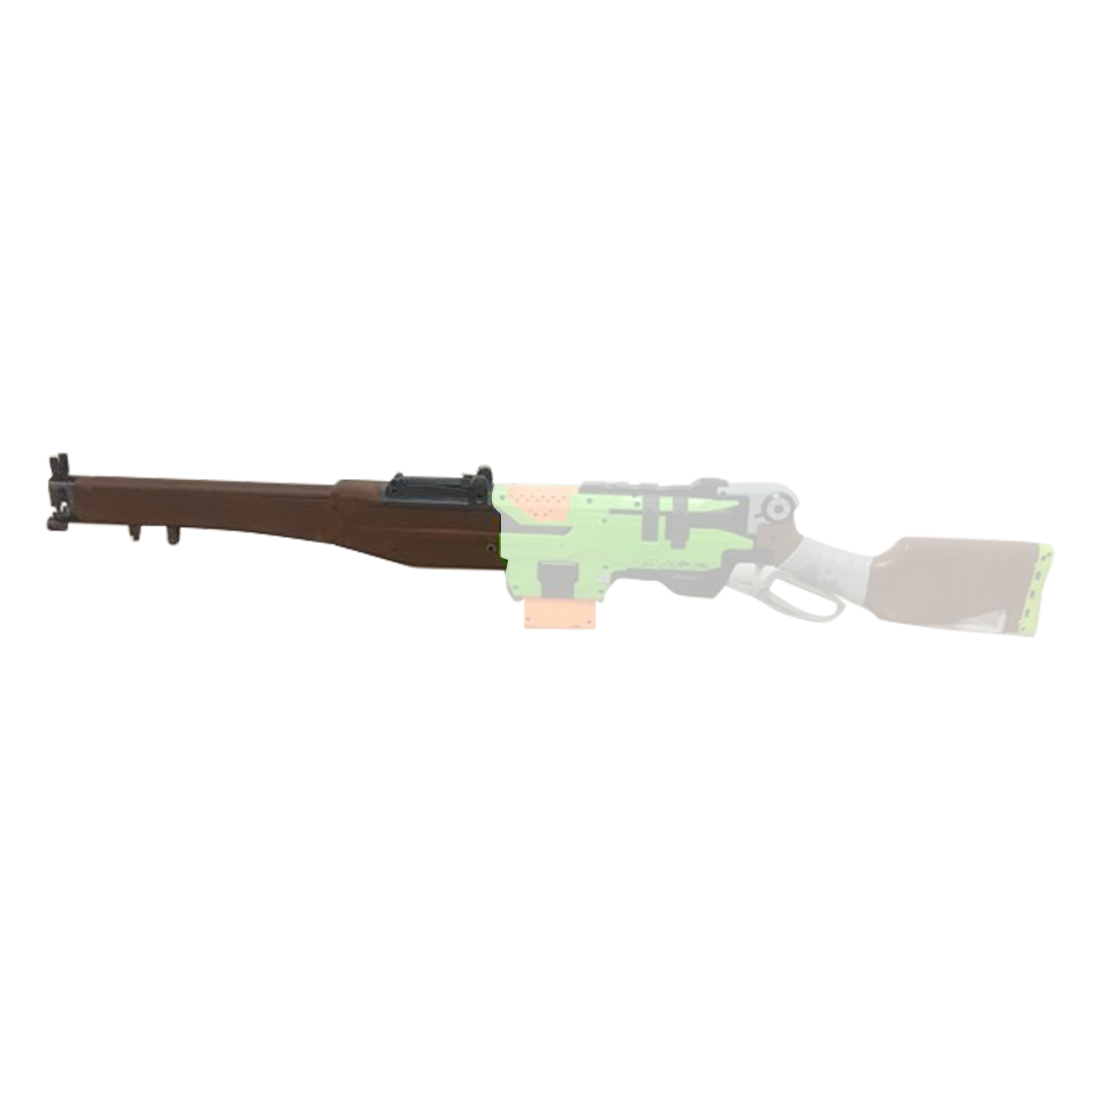 Surwish Military Tactical 3D Printing Long Barrels for Nerf Zombie Strike SlingFire Blaster - Brown